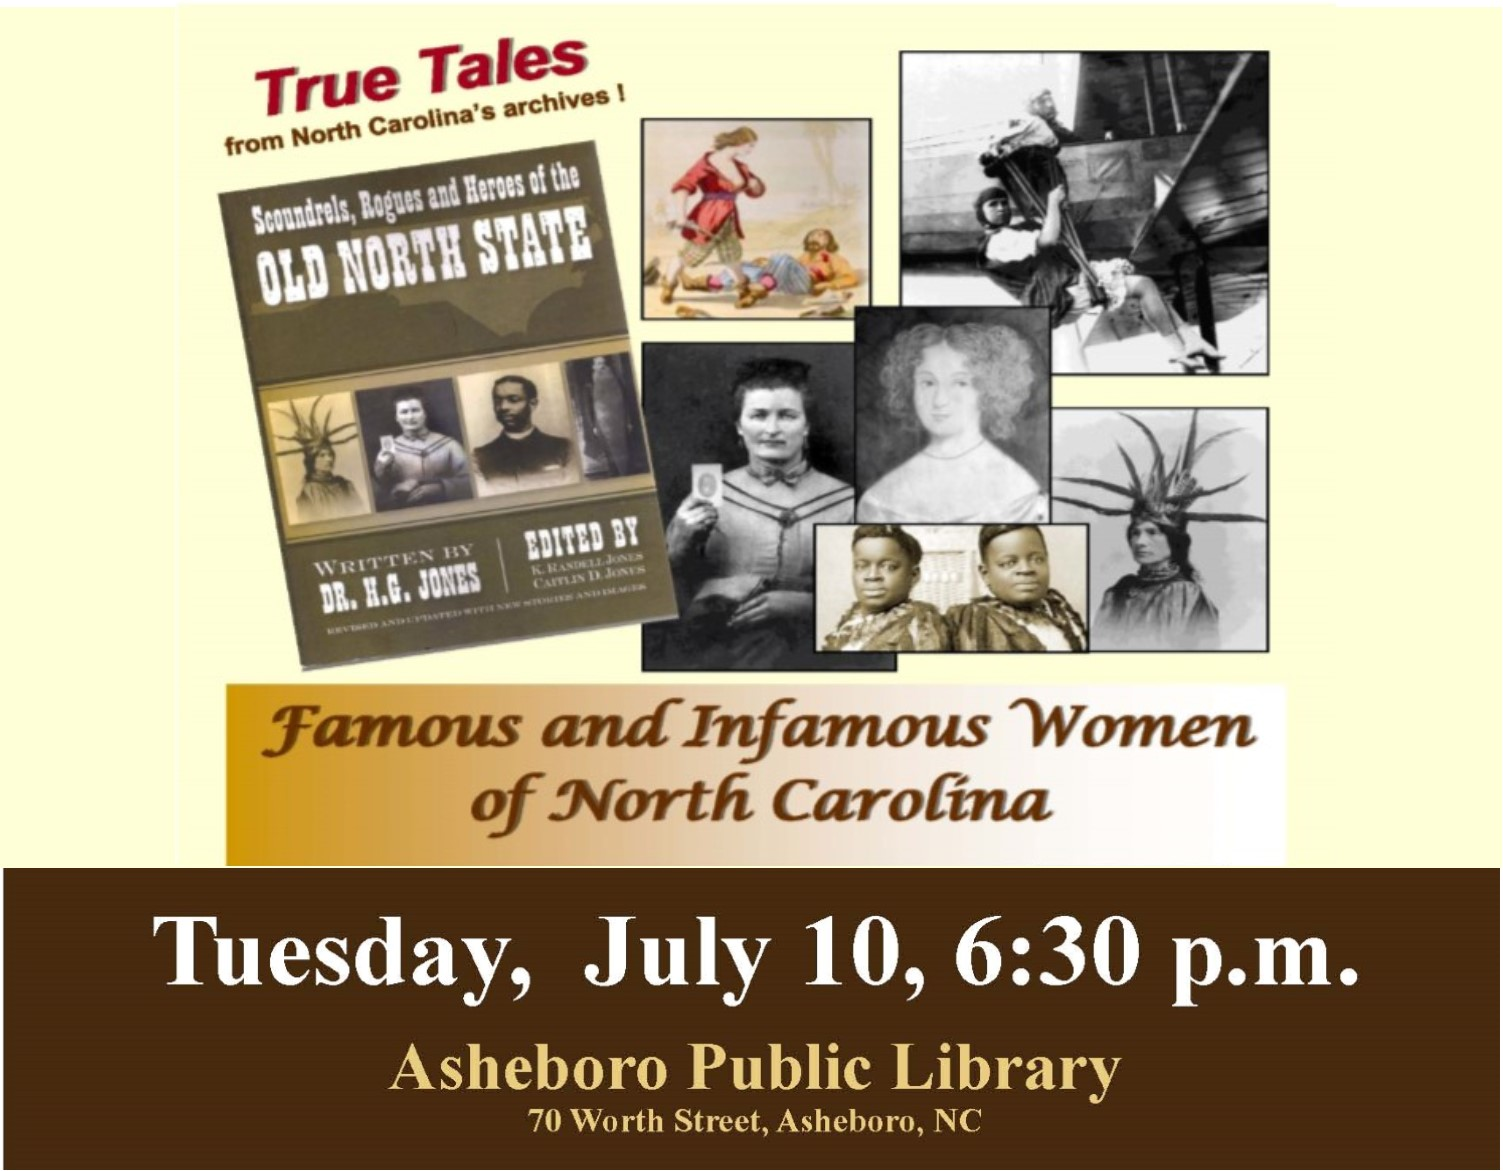 Learn the true tales of the famous and infamous women of NC at the Asheboro Library on July 10th at 6:30!